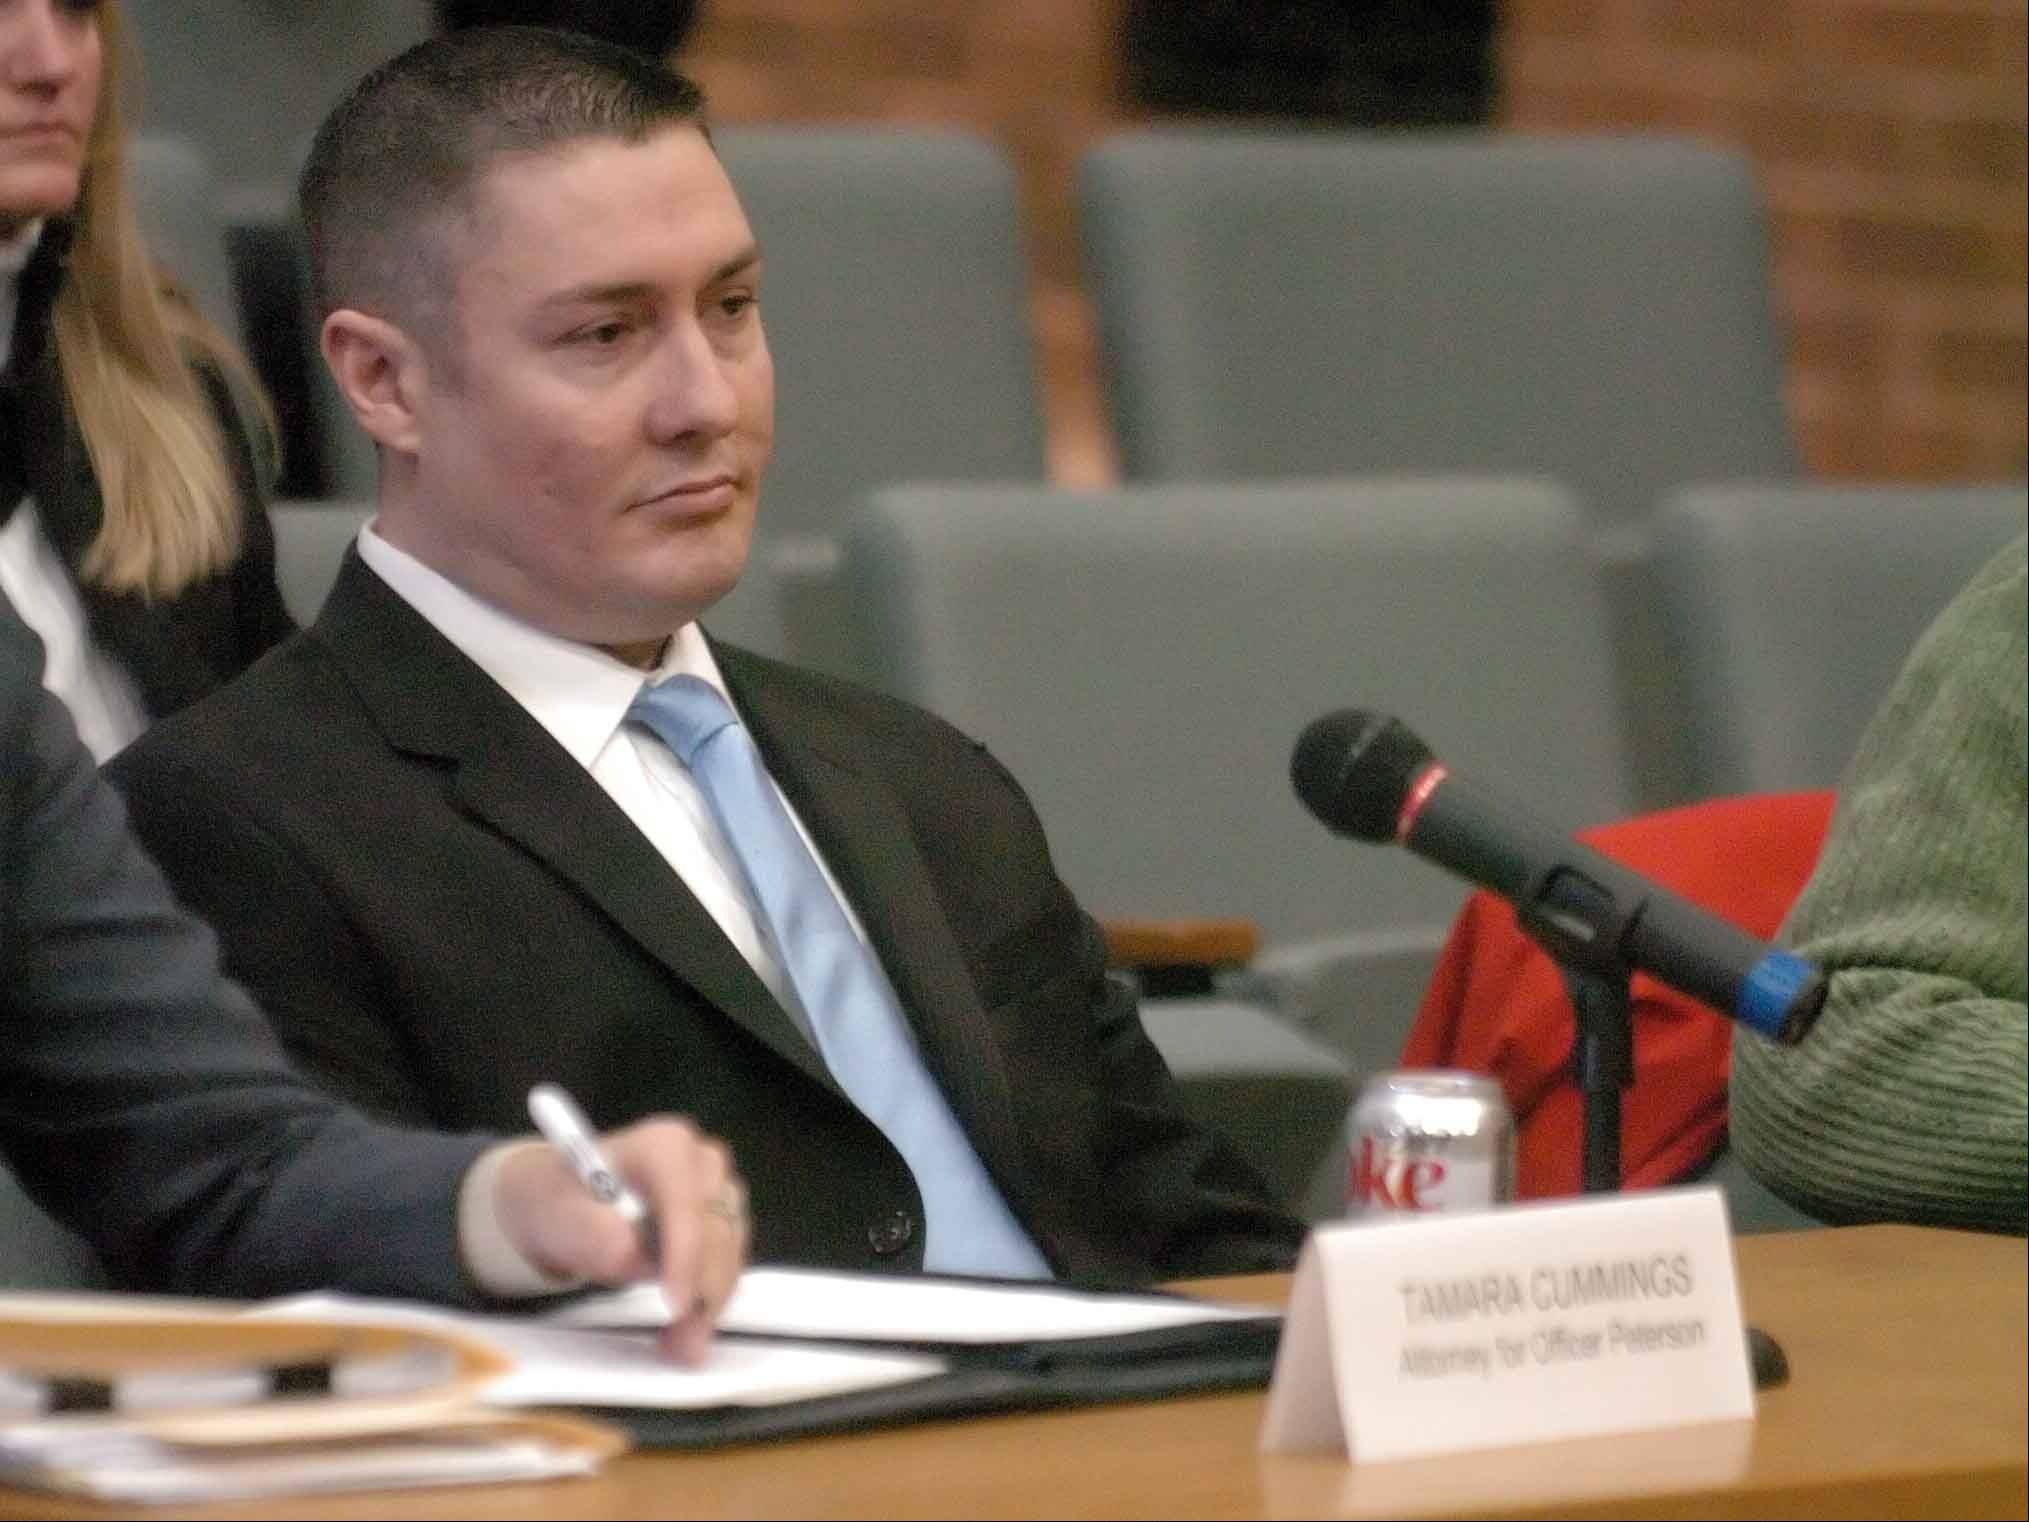 Former Oak Brook police officer Stephen Peterson, son of Drew, claims Oak Brook's former police chief conspired to get him off the force.